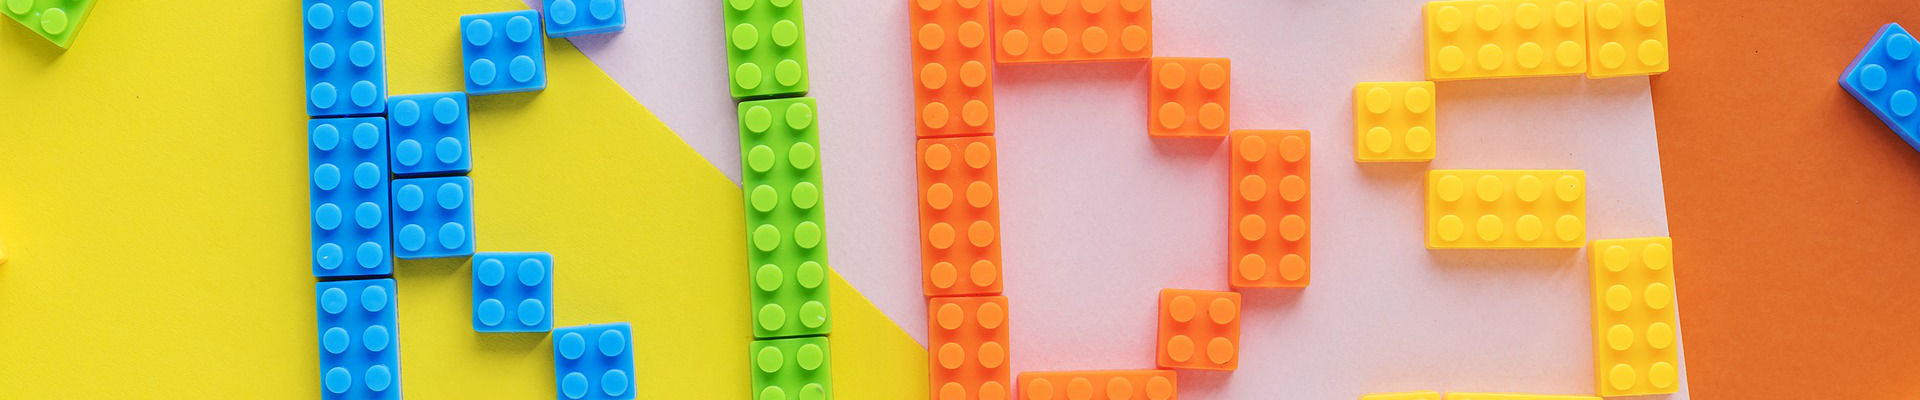 Lego for kids, letters